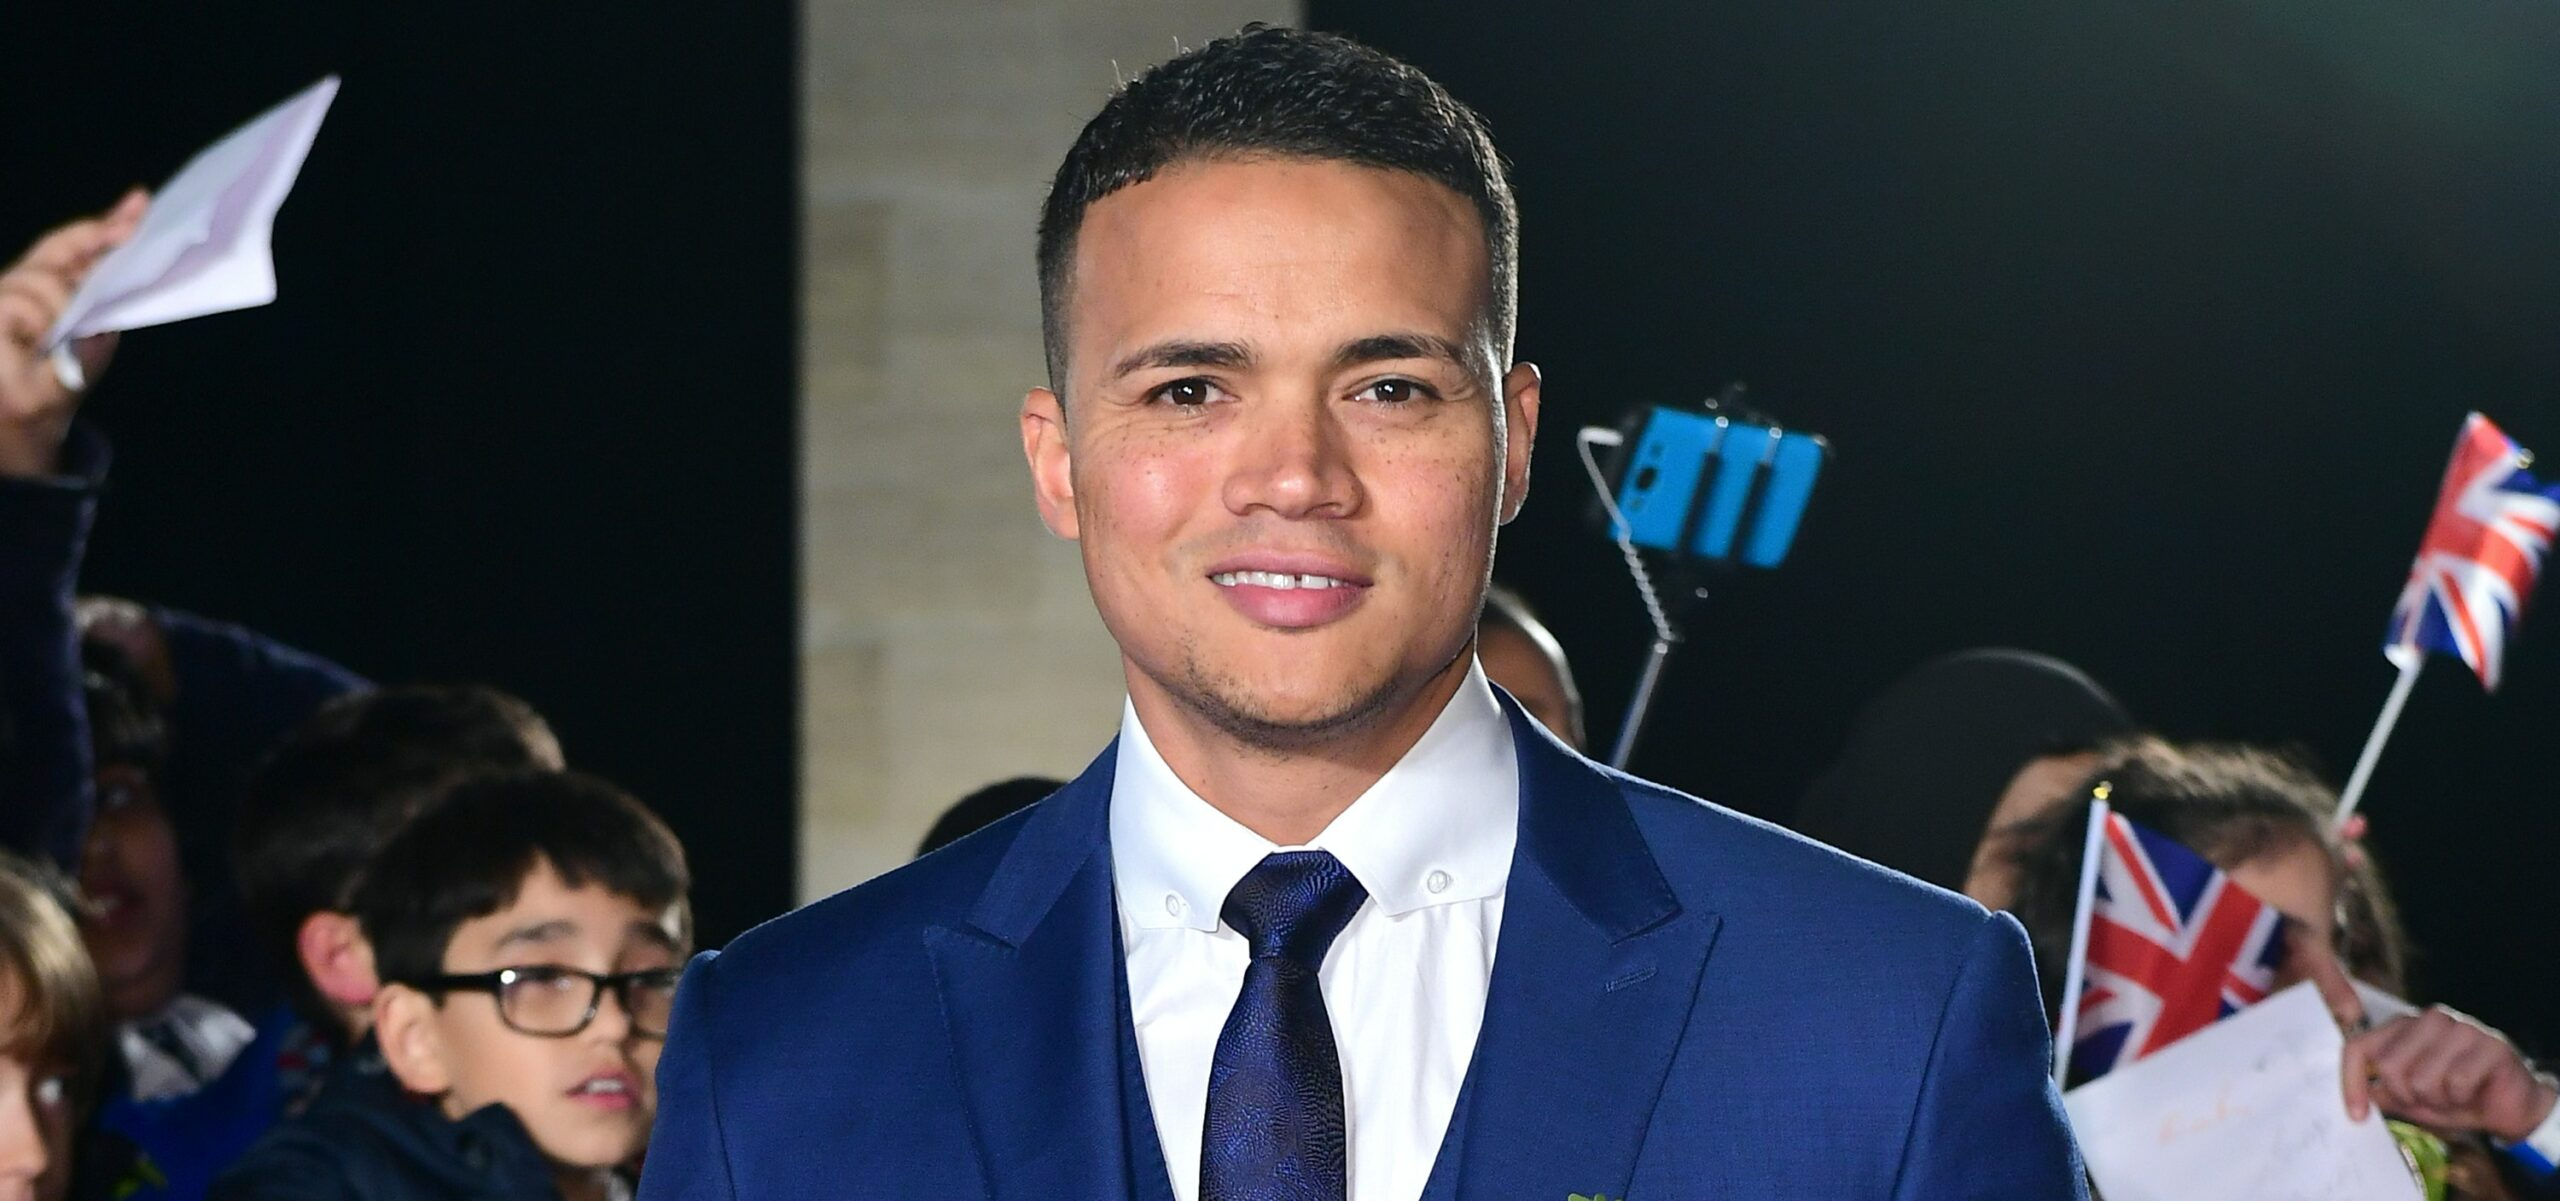 Jermaine Jenas interview